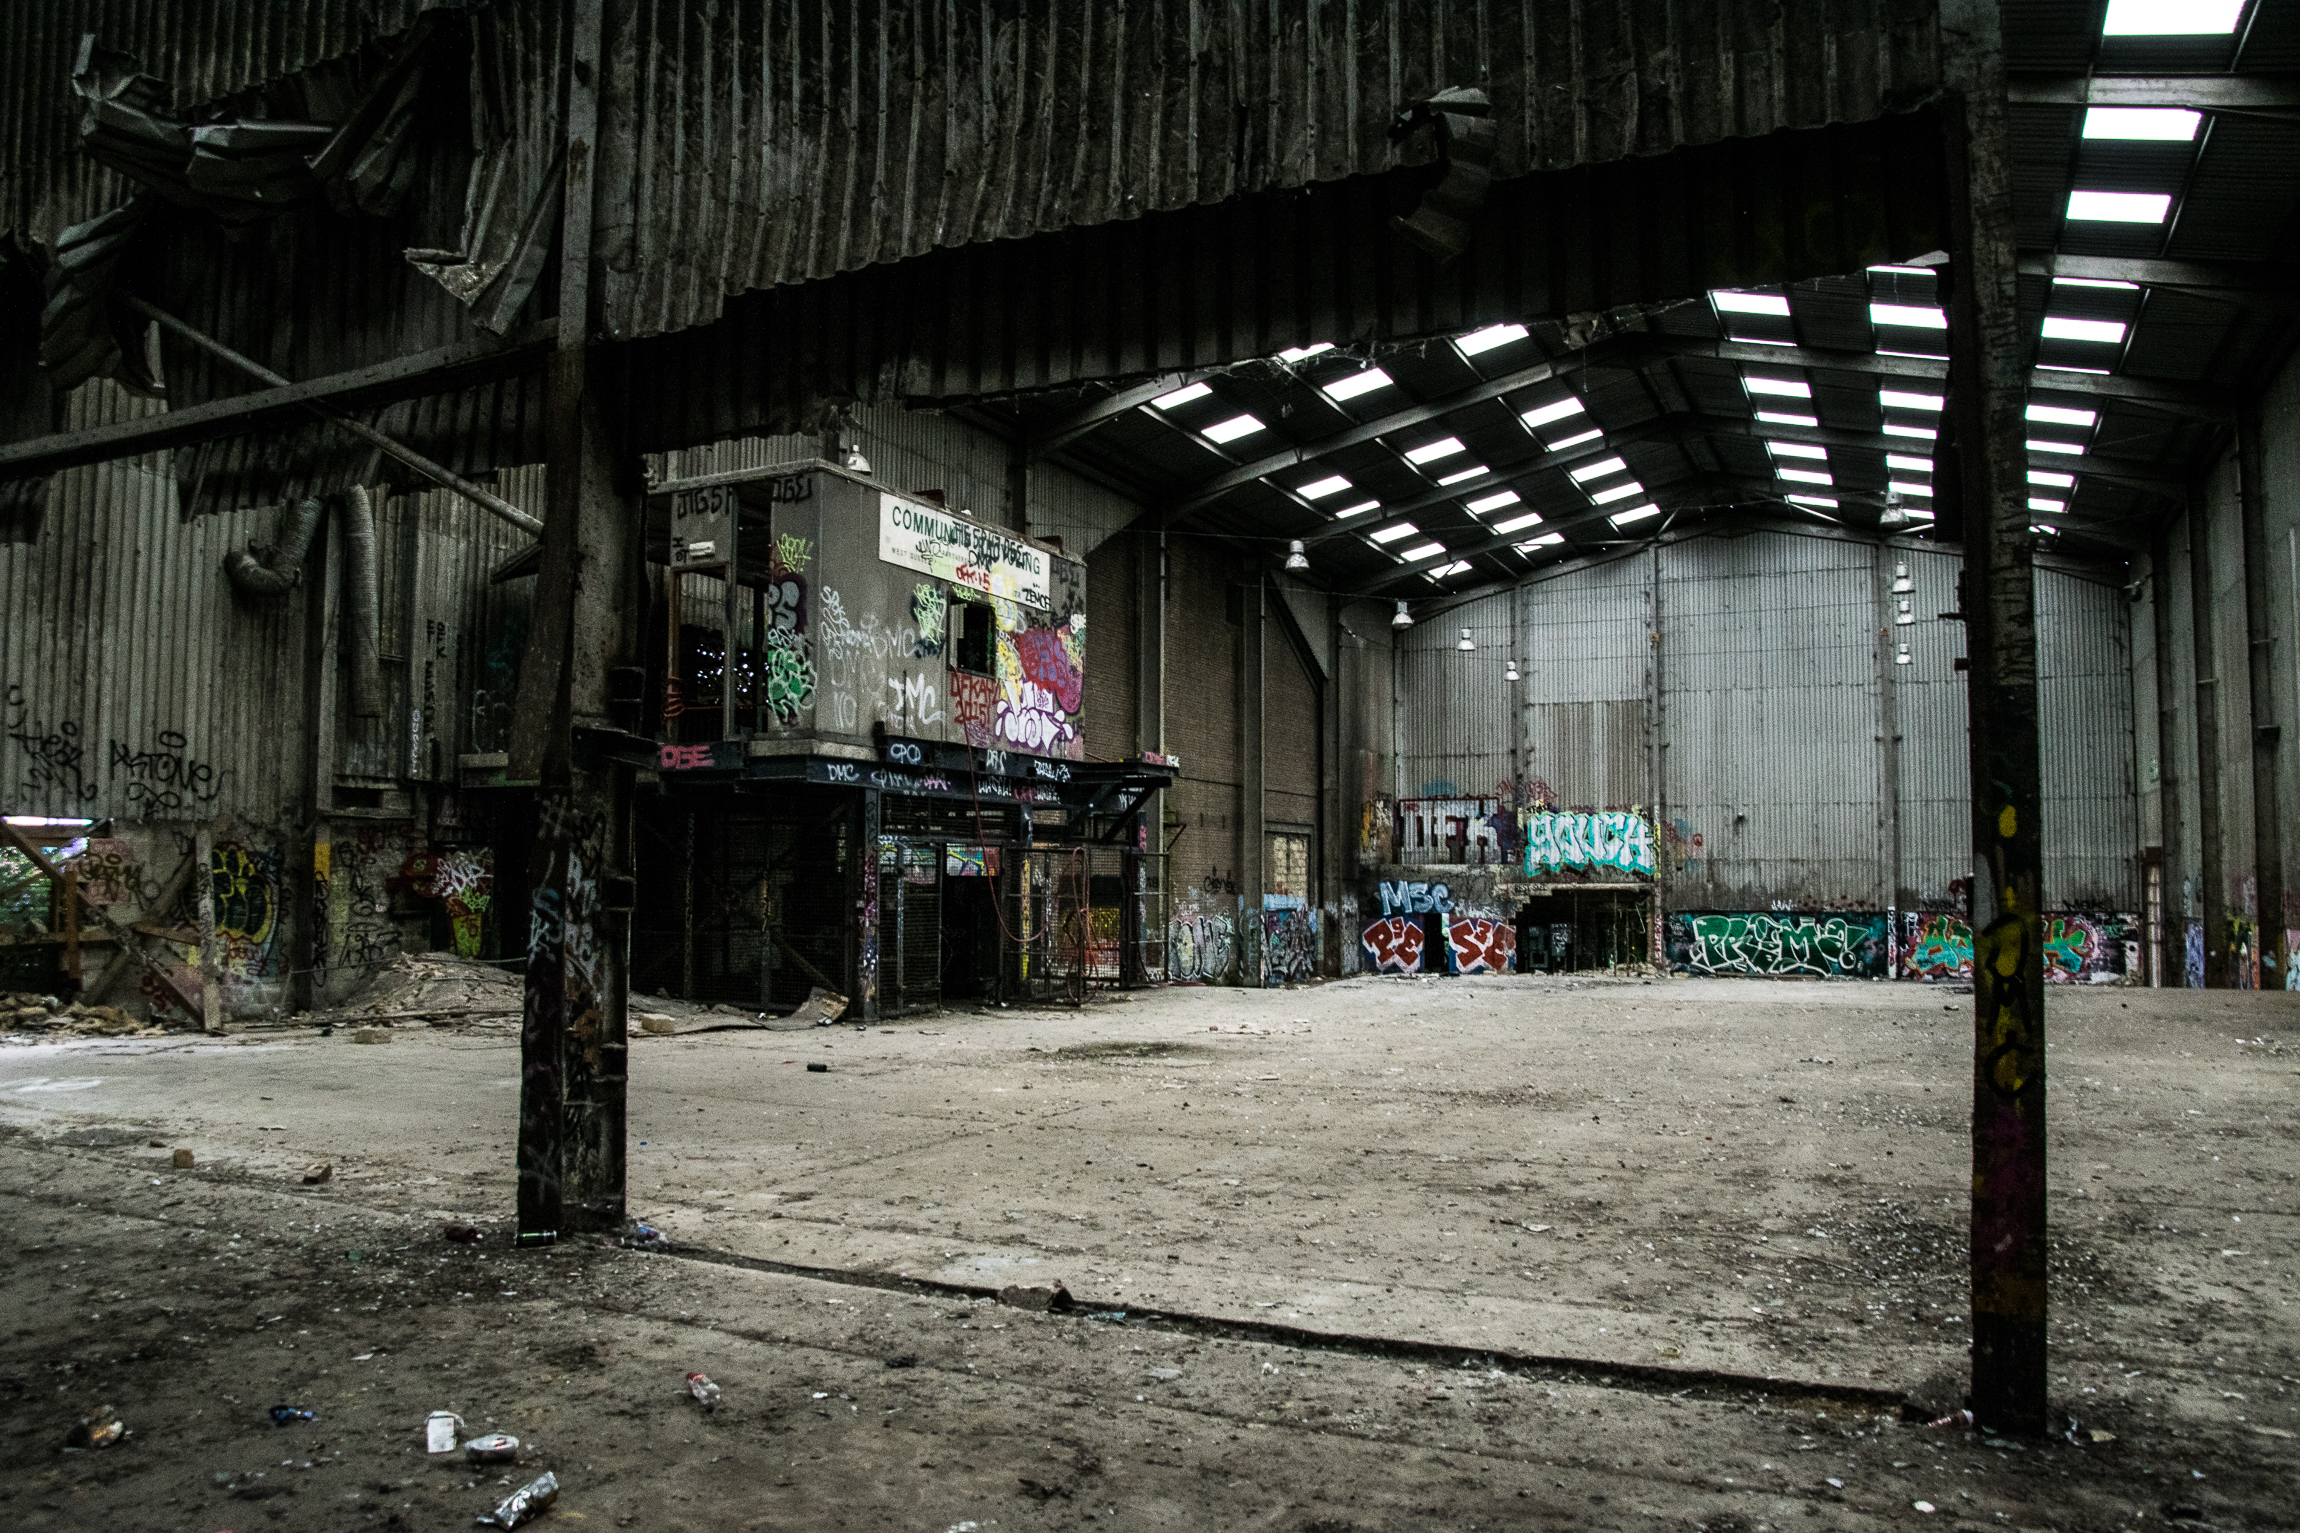 Disused Rubbish and Recycling Plant - Lord knows why I decided to spend a Sunday afternoon in here.Although empty for a decade or so, it stank as fresh as a back end of a rubbish truck on a humid summer's day.Some interesting graf here that kept me distracted though. A huge space.